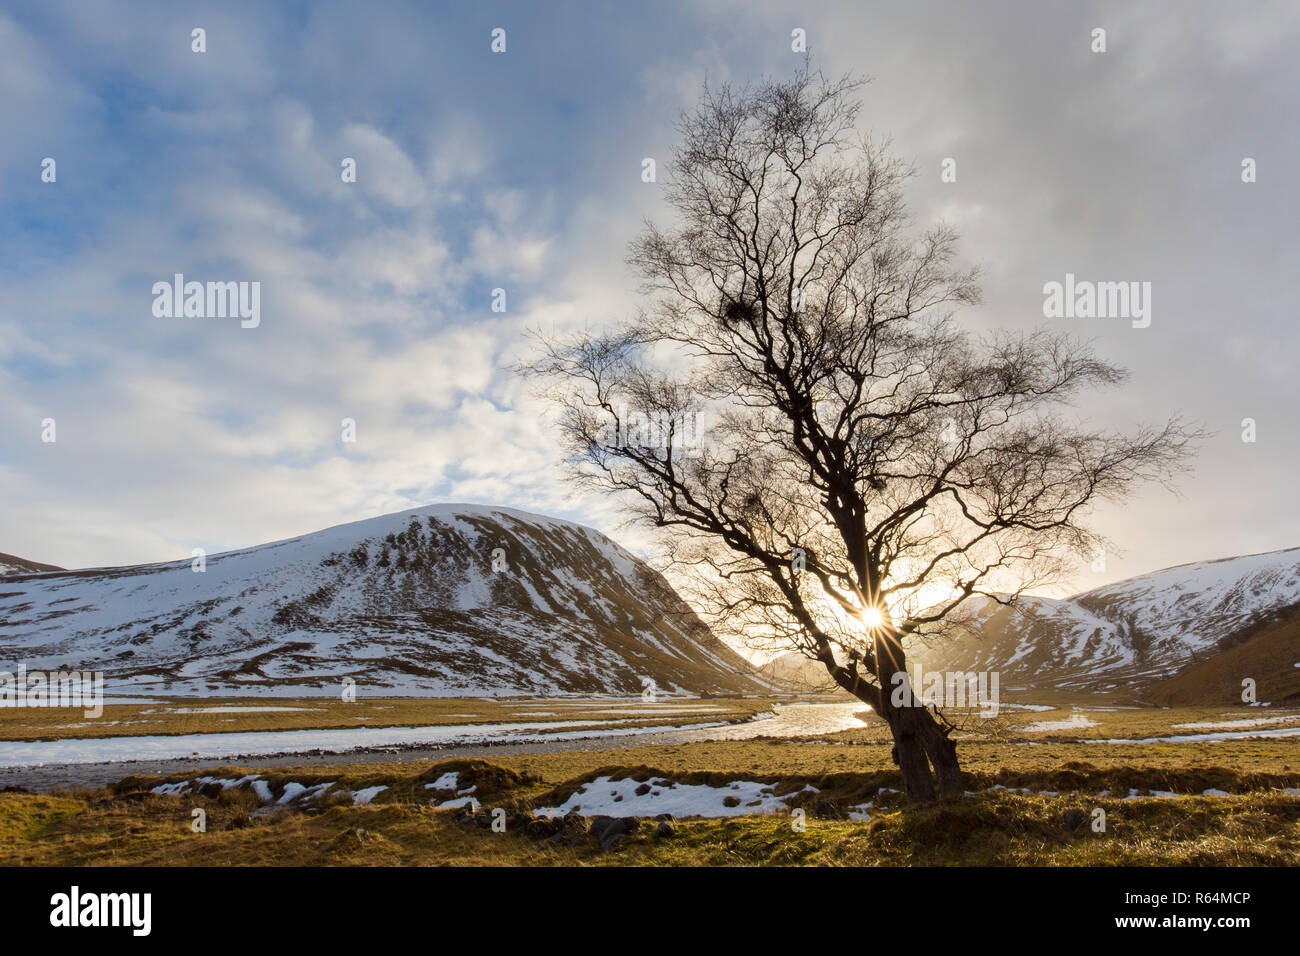 Sun shining though bare branches of solitary tree along River Findhorn at sunset in winter in the Strathdearn valley, Scottish Highlands, Scotland, UK - Stock Image